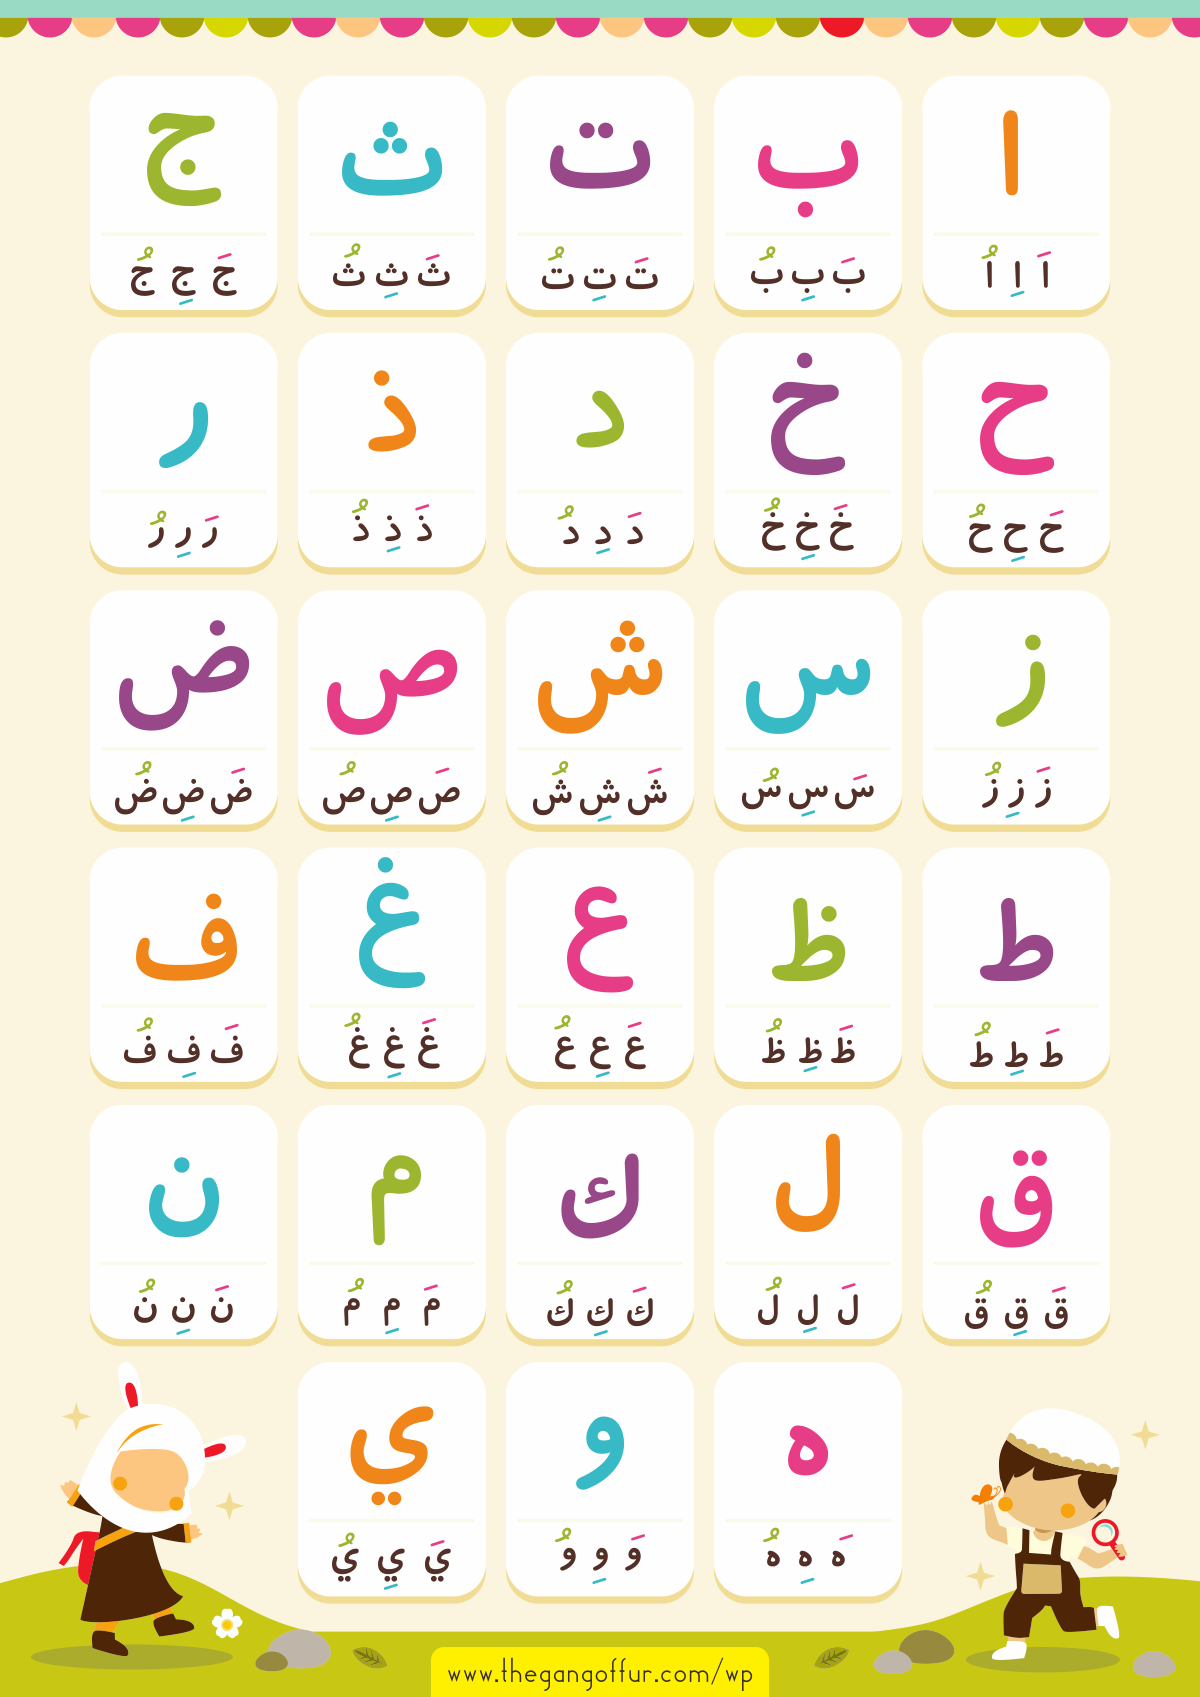 Arabic alphabet - Wikipedia